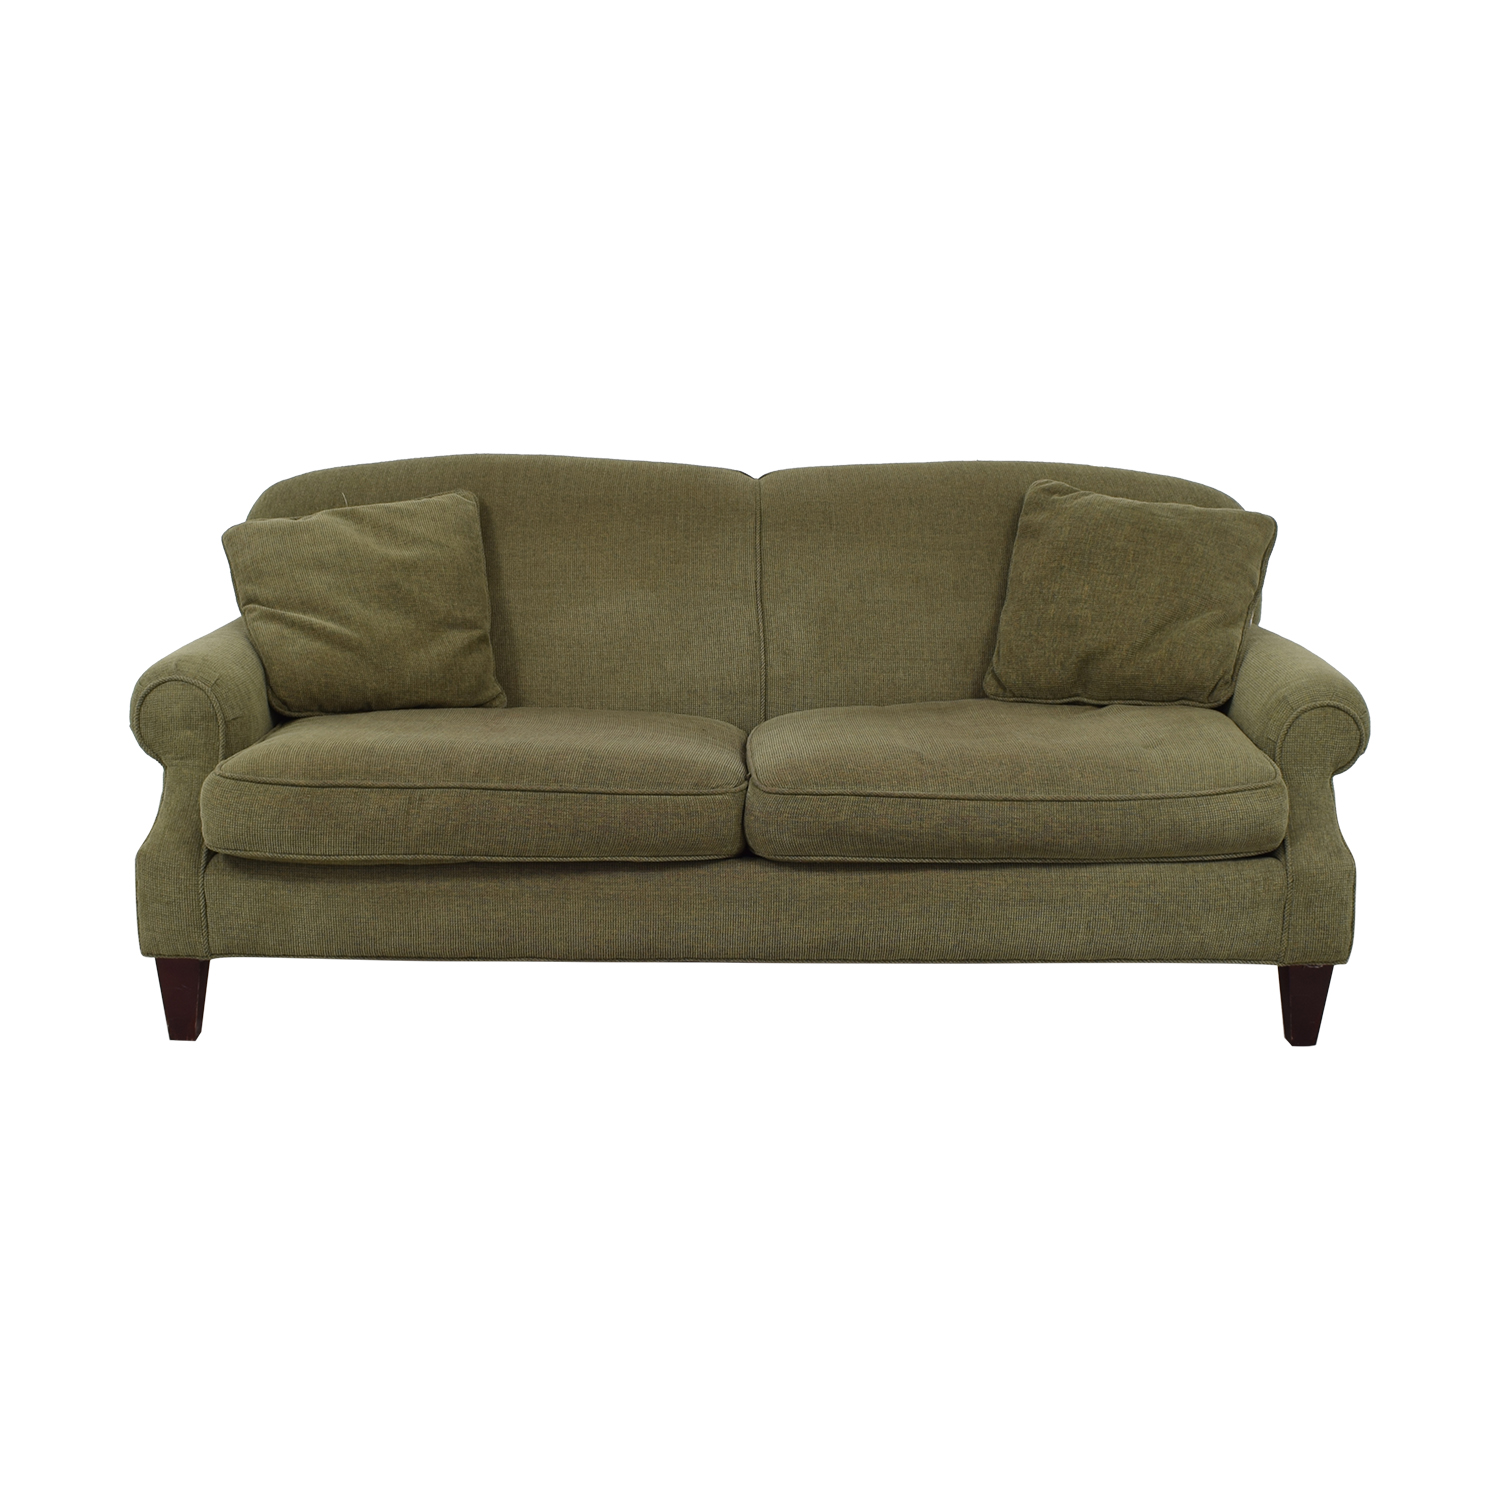 buy Crate & Barrel Crate & Barrel Green Two-Cushion Sofa online